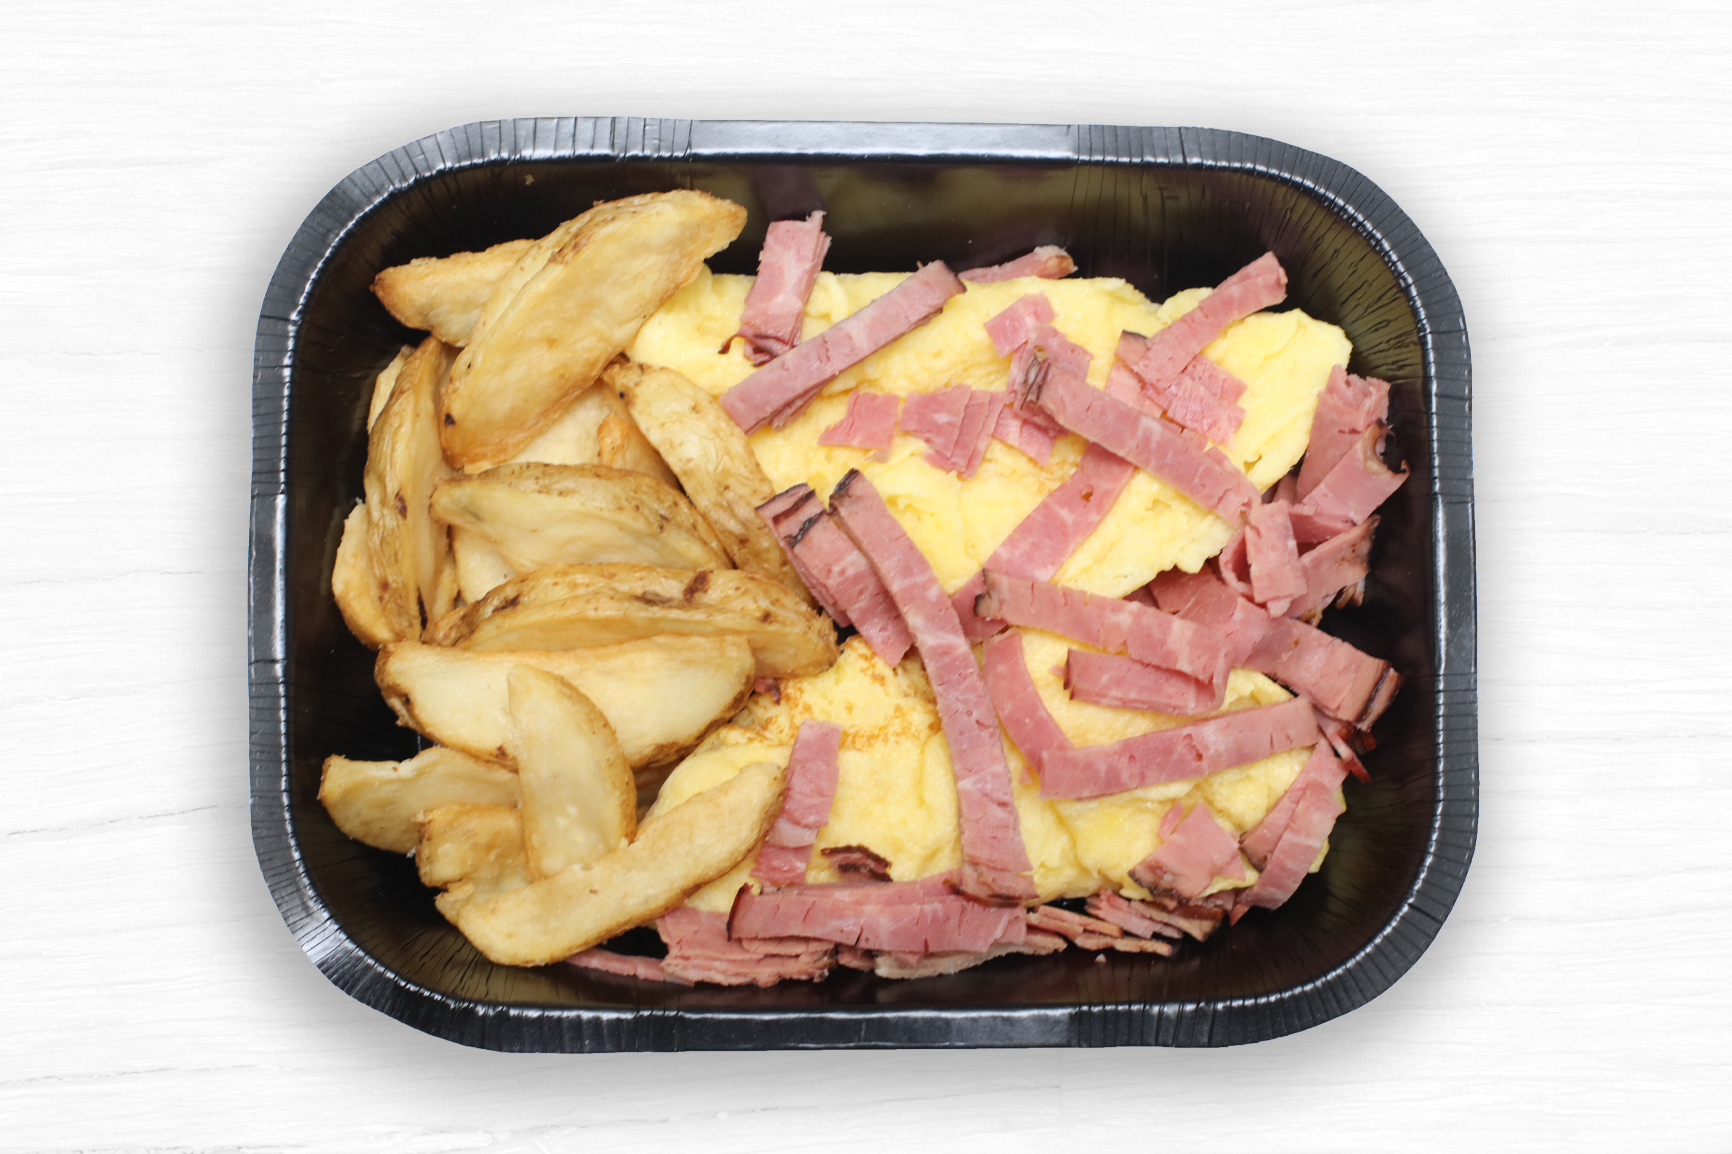 SMOKED MEAT OMELETTE